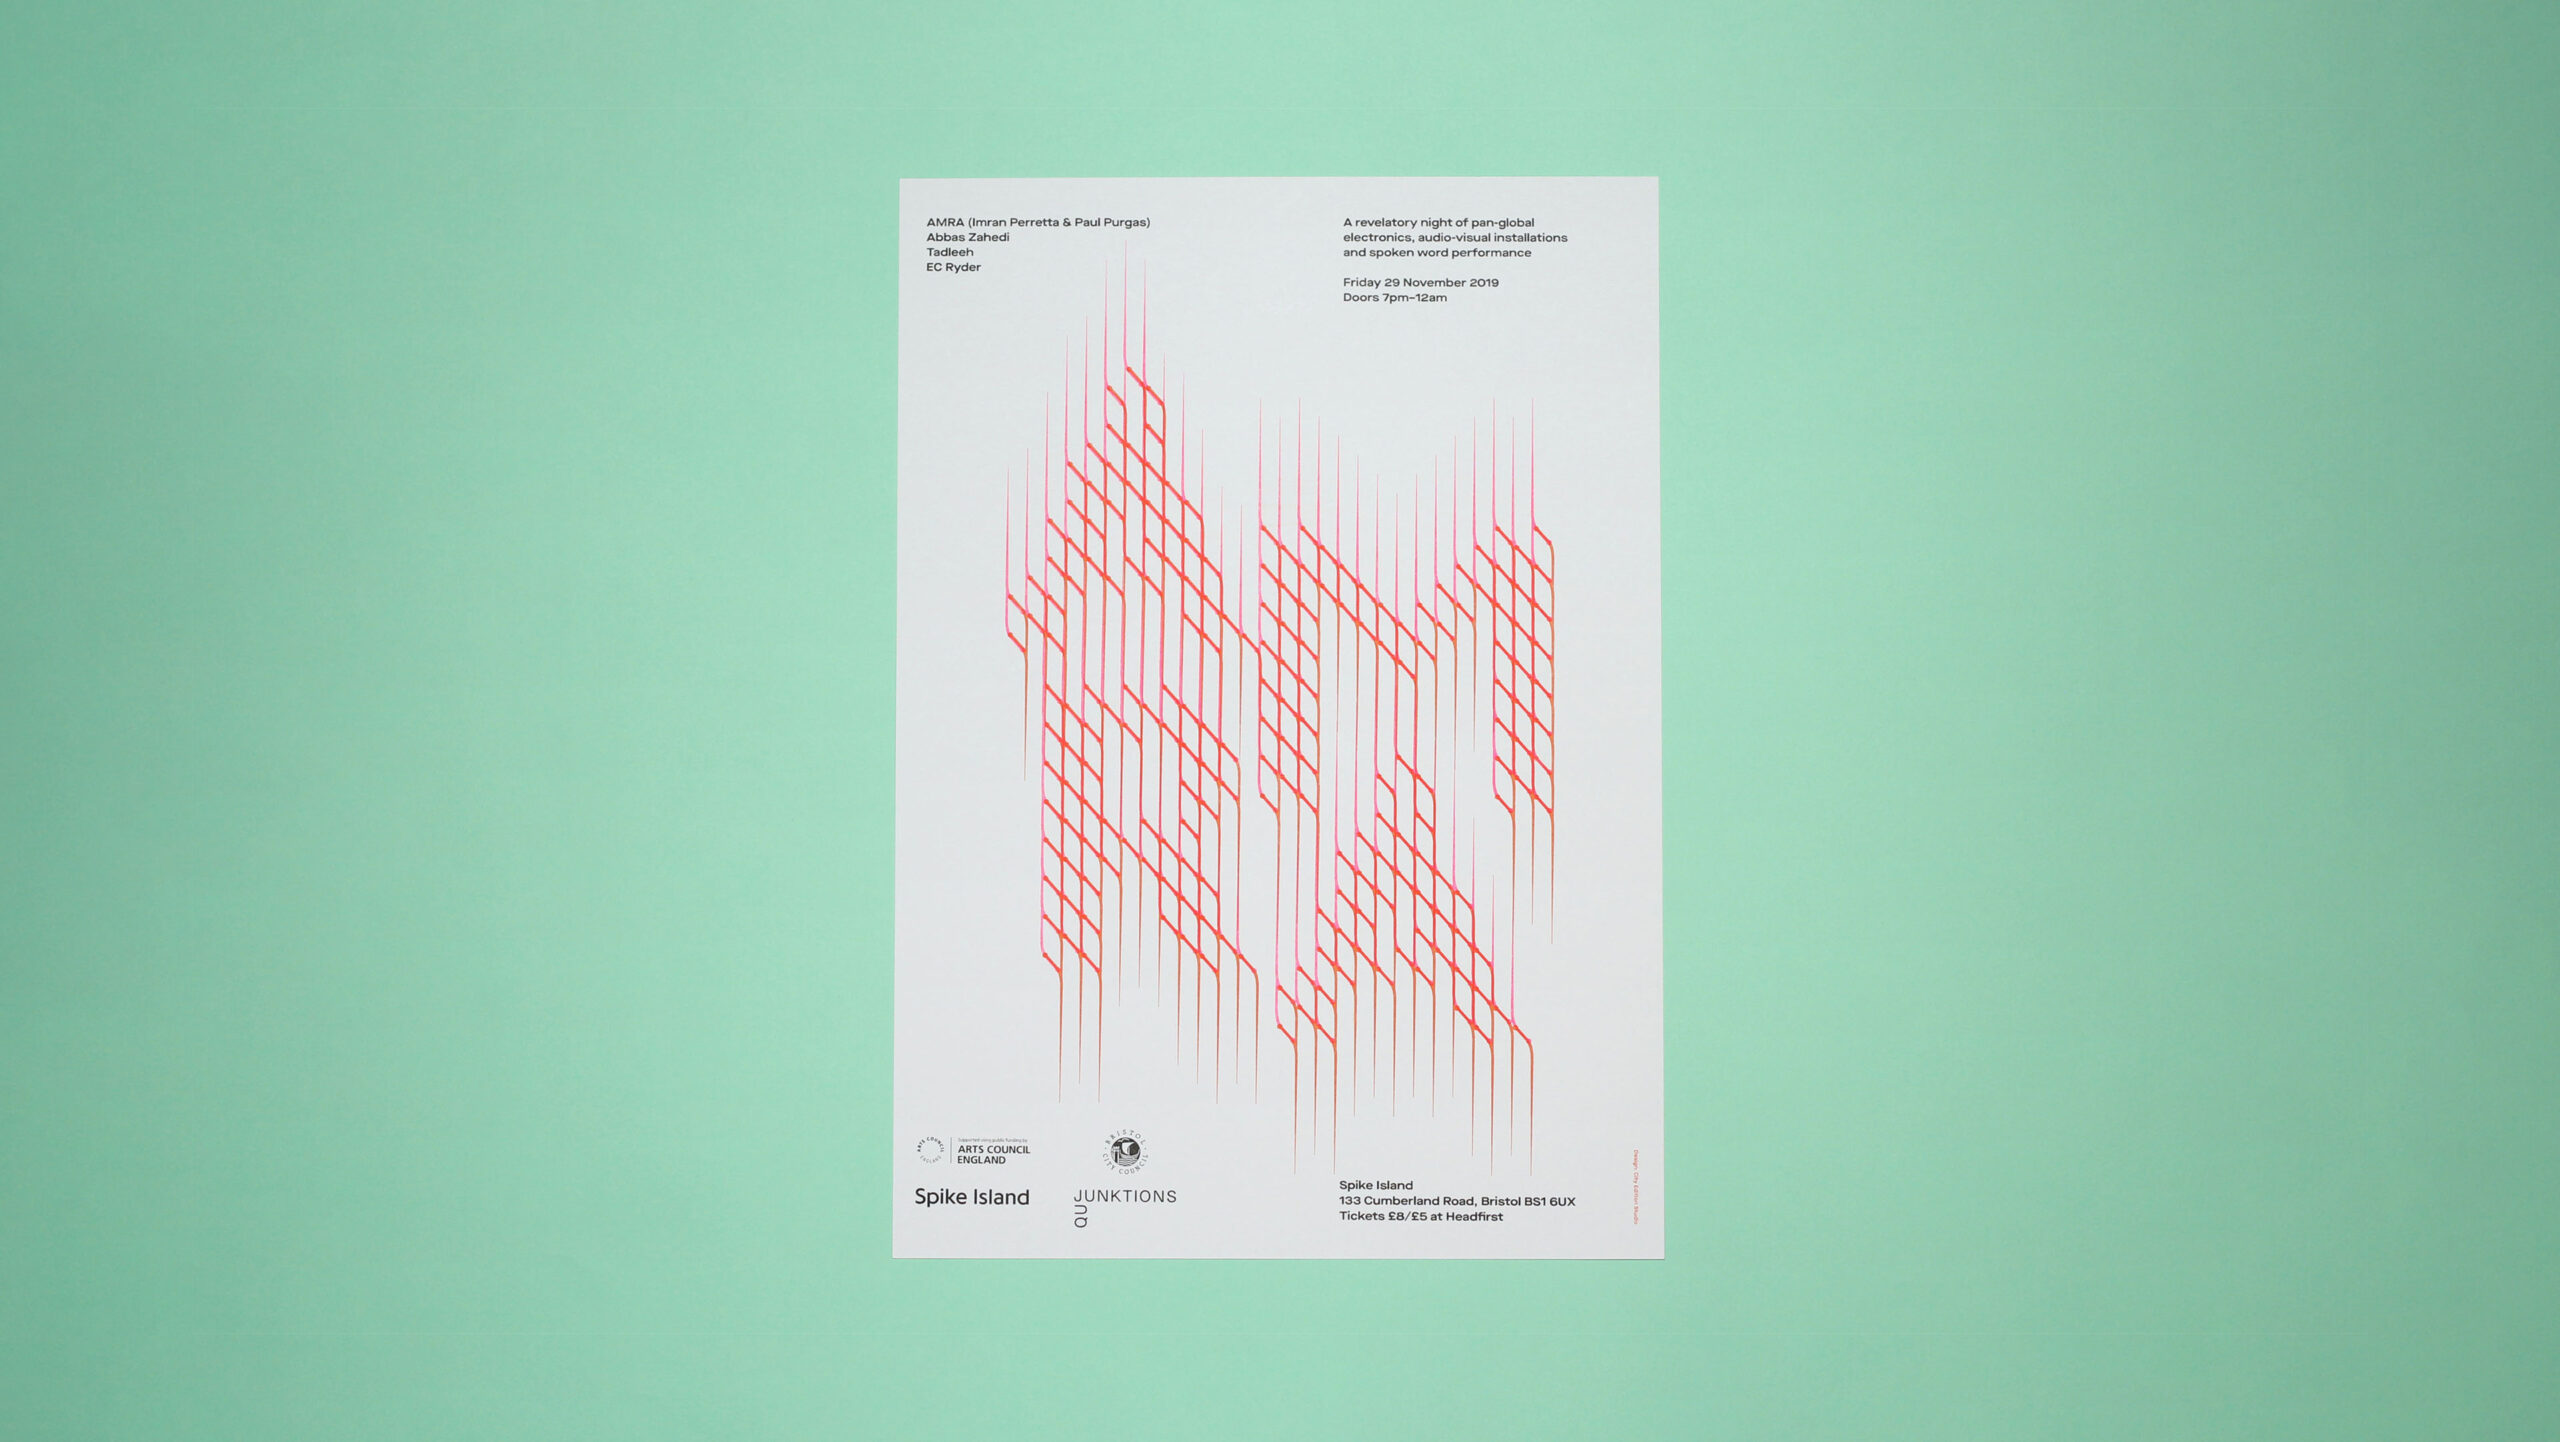 A typographic poster for AMRA's live event at Spike Island, designed by City Edition Studio